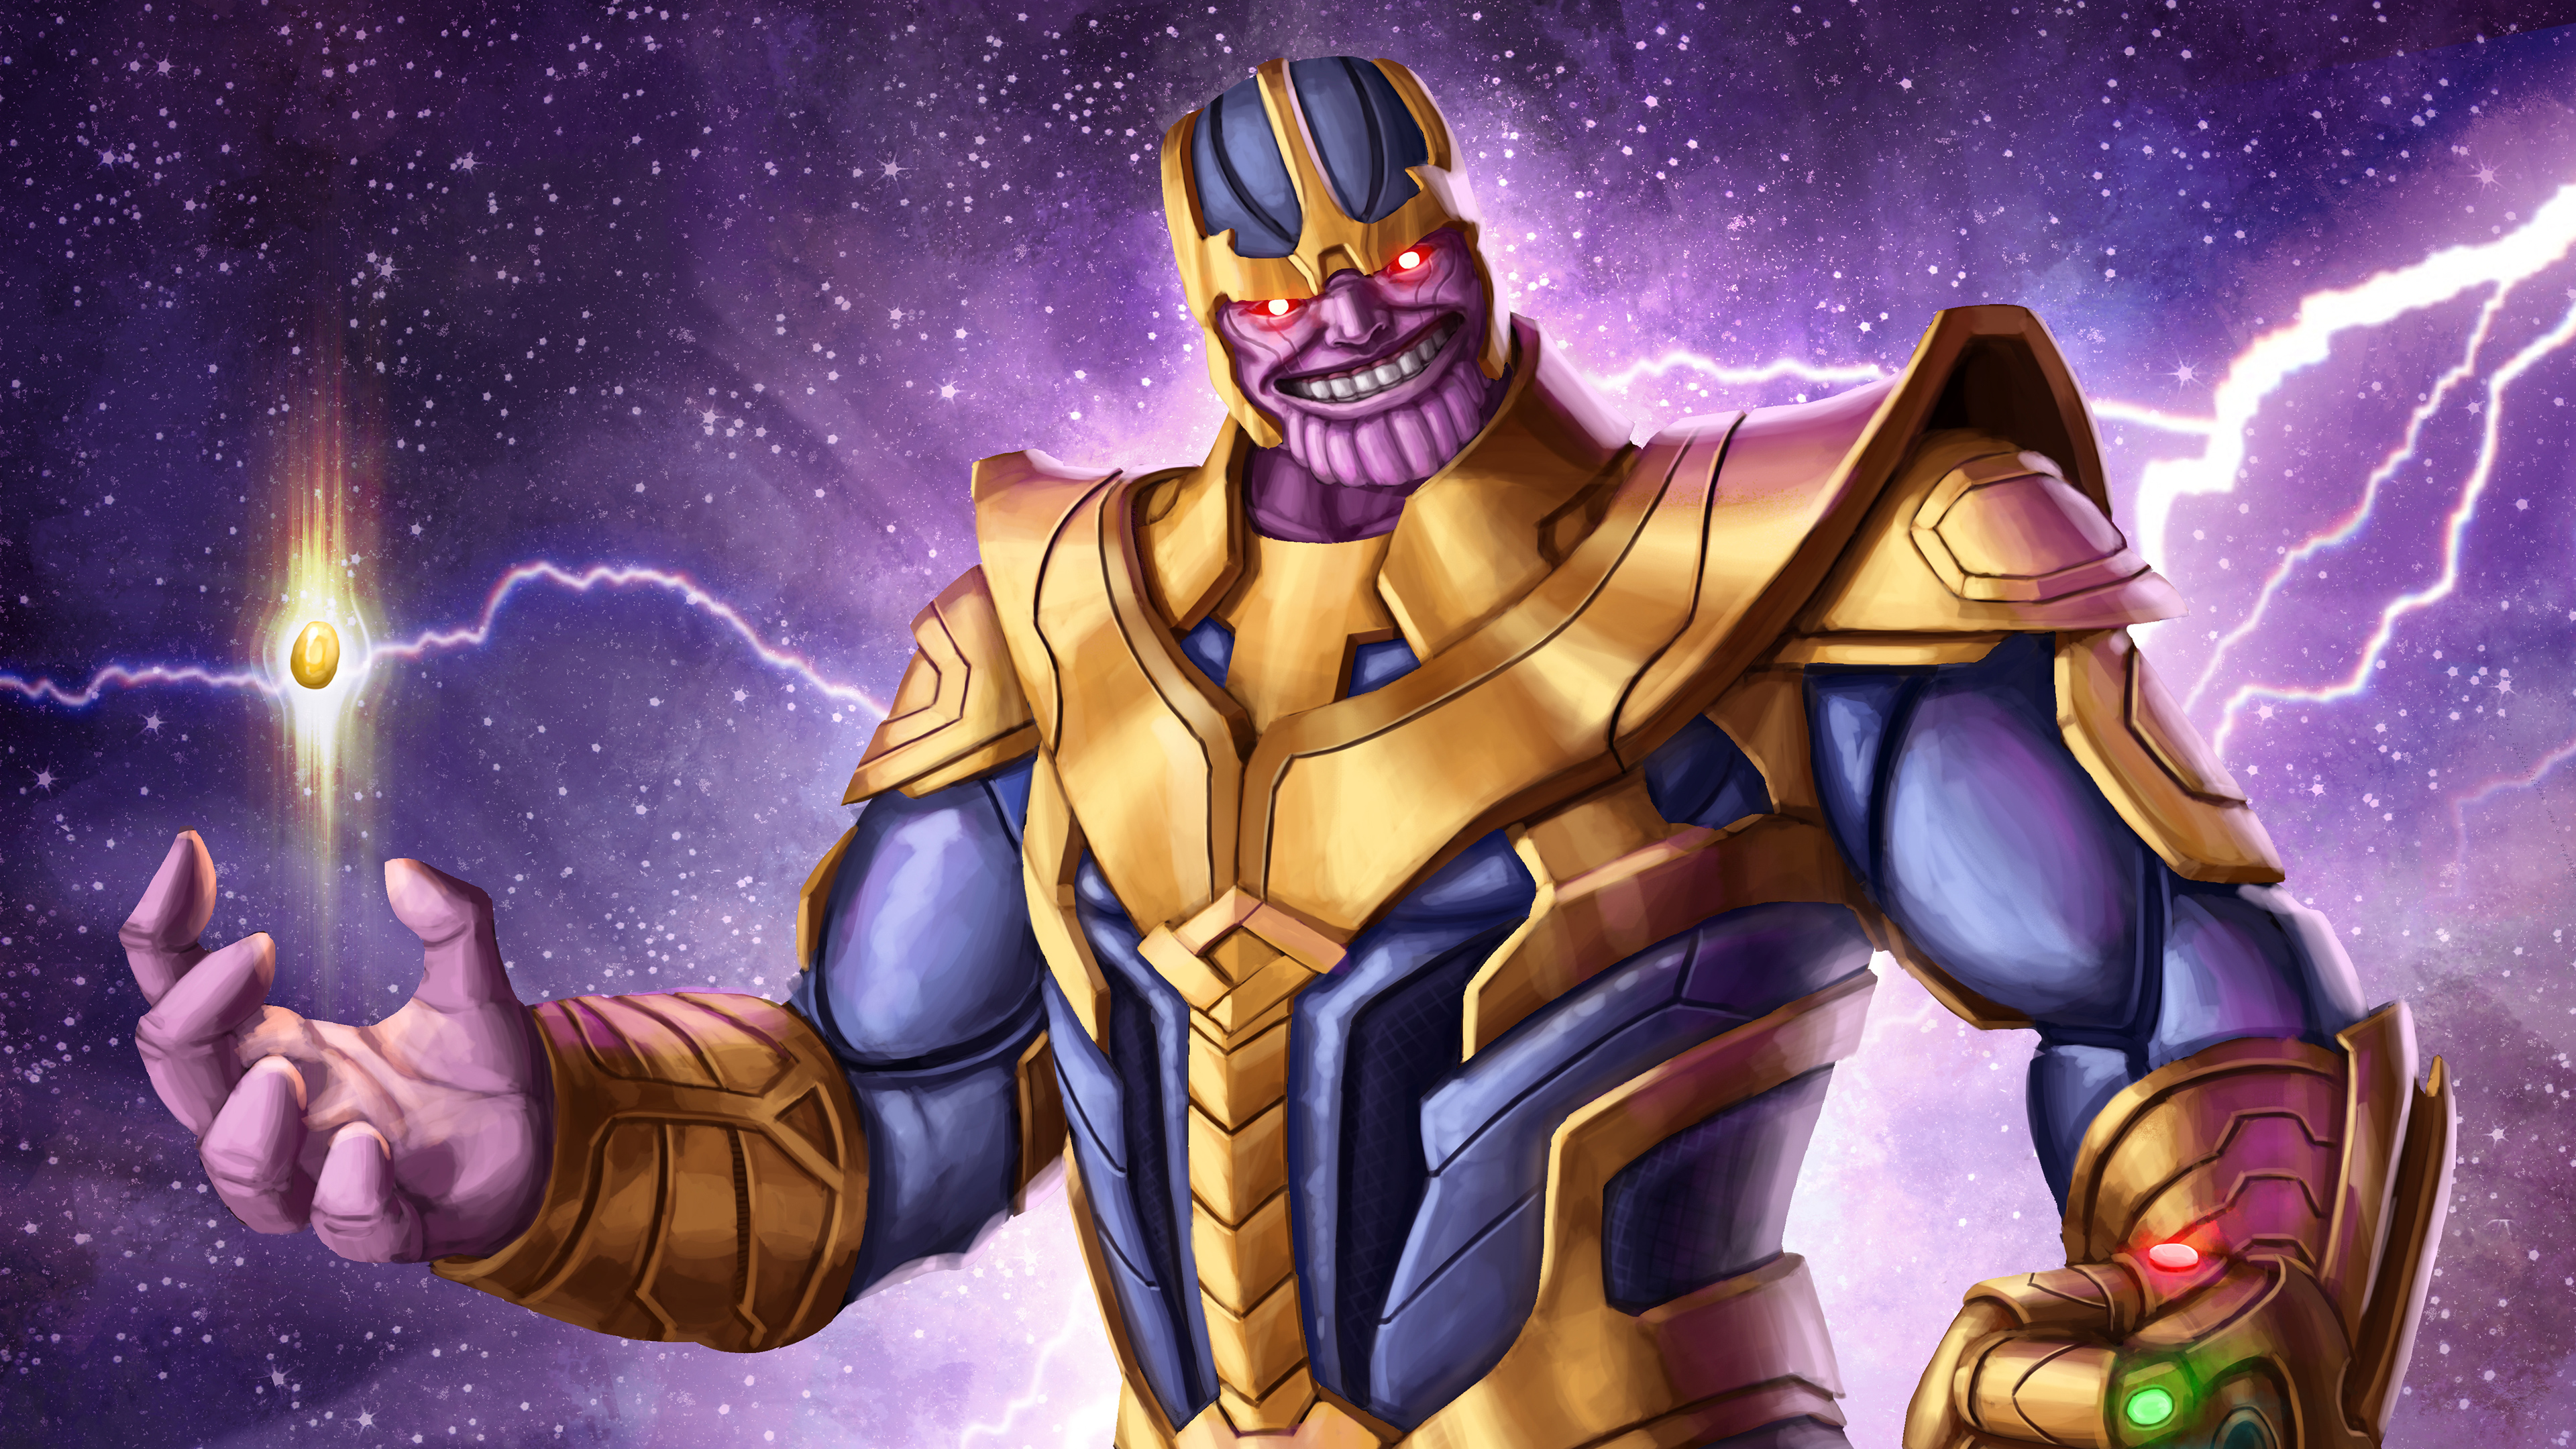 Thanos 4k Arts thanos-wallpapers, superheroes wallpapers ...